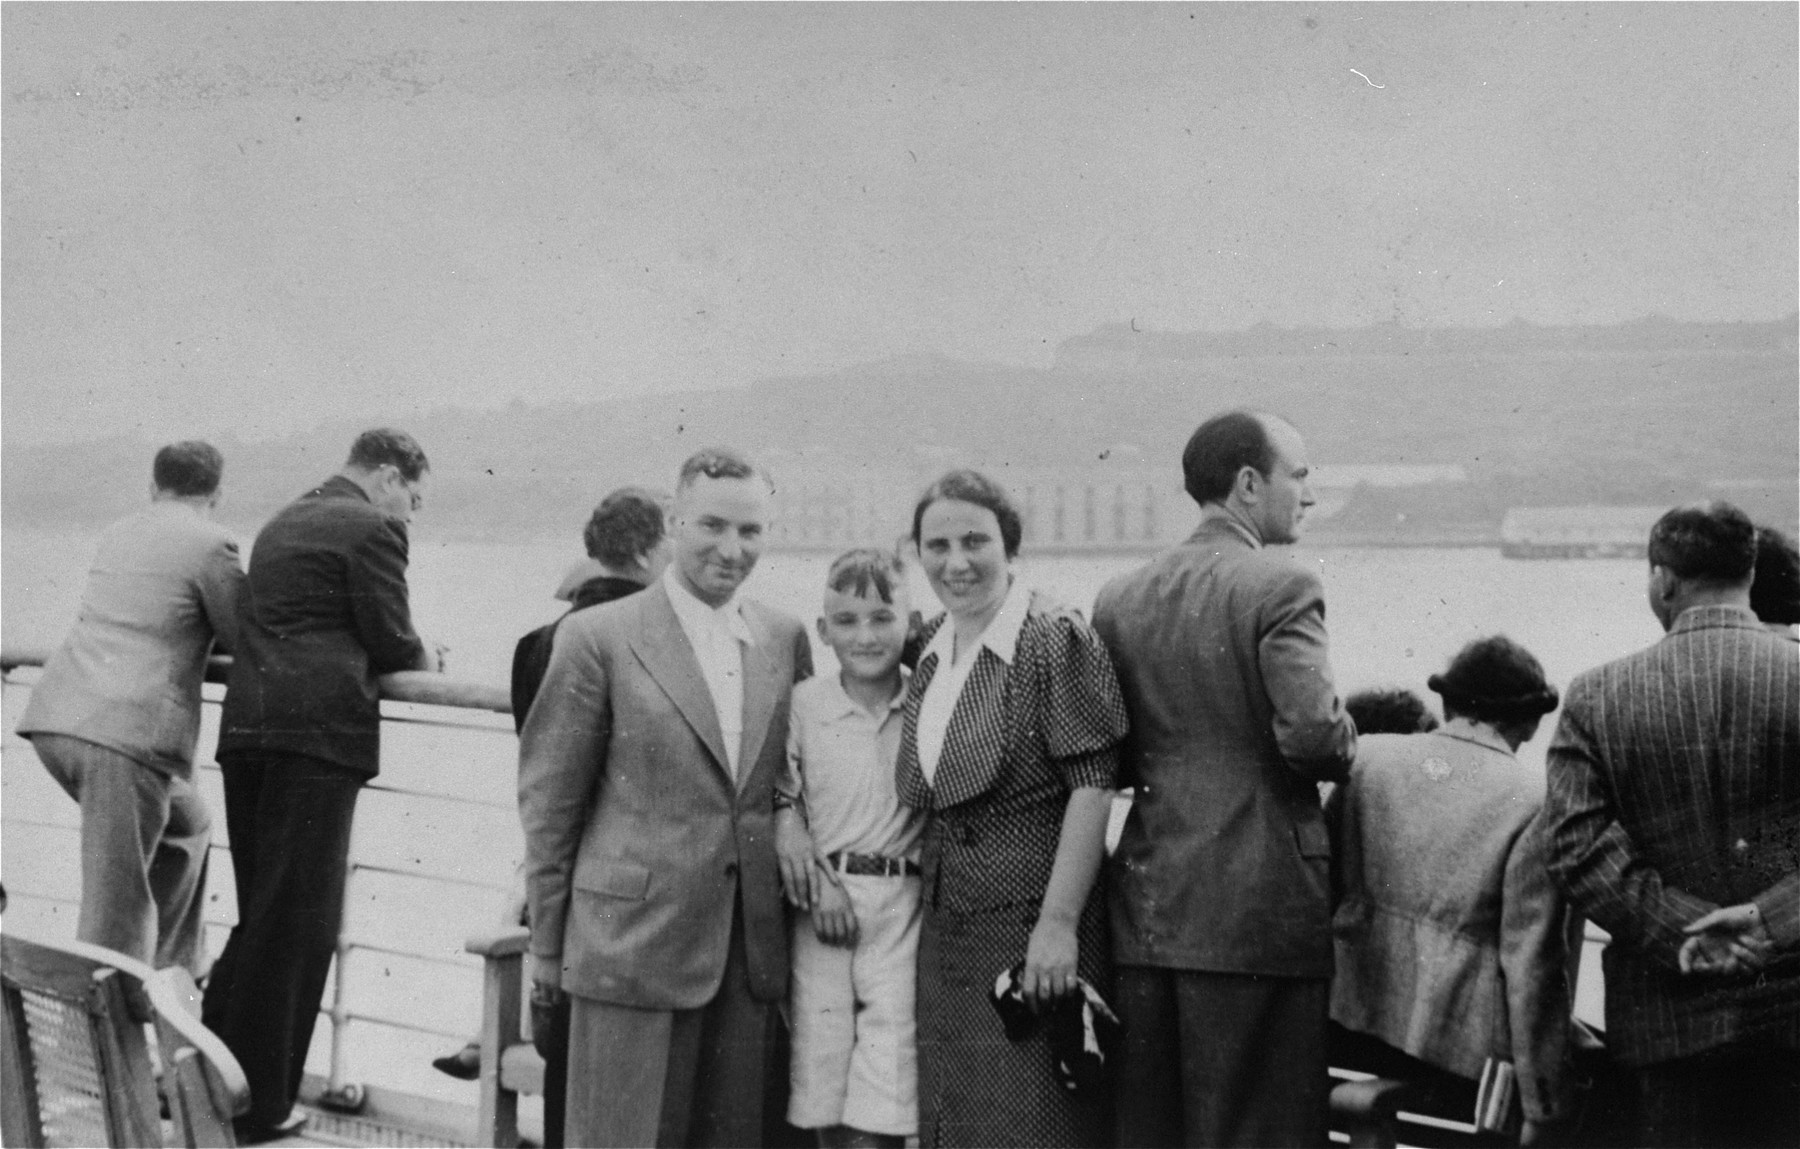 A Jewish refugee family from Germany poses for a picture as their ship, the SS Rotterdam, arrives in New York harbor.  Pictured are Sol and Henrietta Meyer and their son Harvey.  (The Meyers are the aunt and uncle of donor Jill Pauly.)